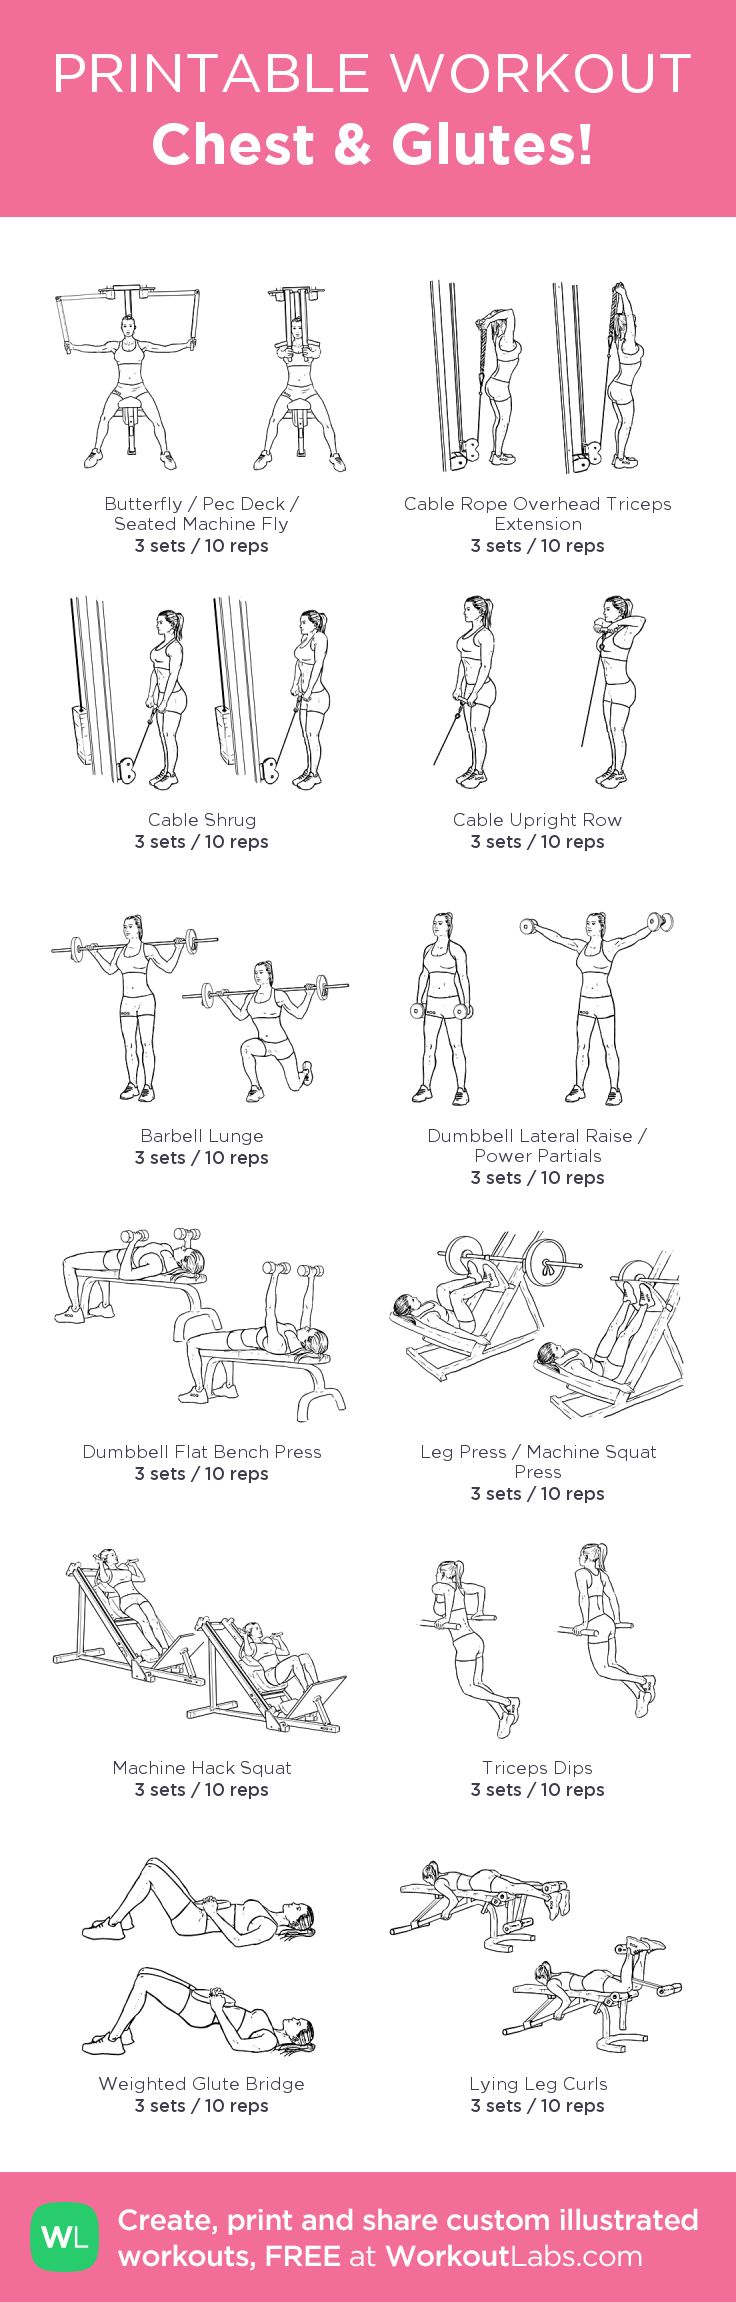 Chest & Glutes!: my visual workout created at WorkoutLabs.com • Click through to customize and download as a FREE PDF! #customworkout